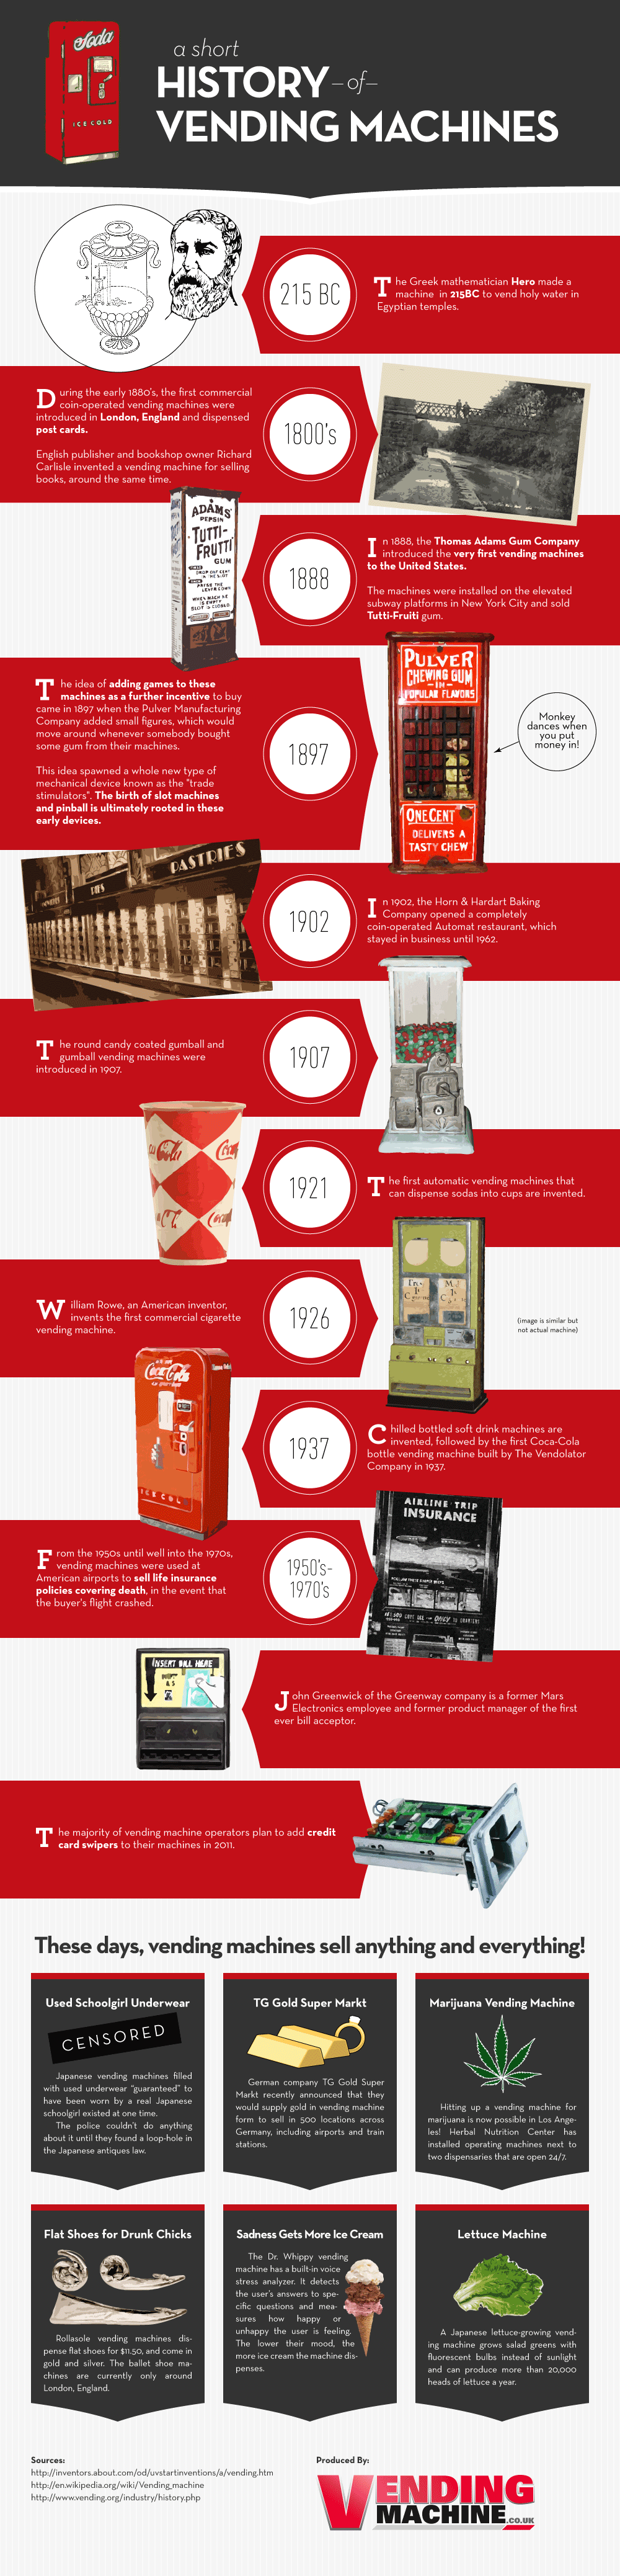 A History of Vending Machines